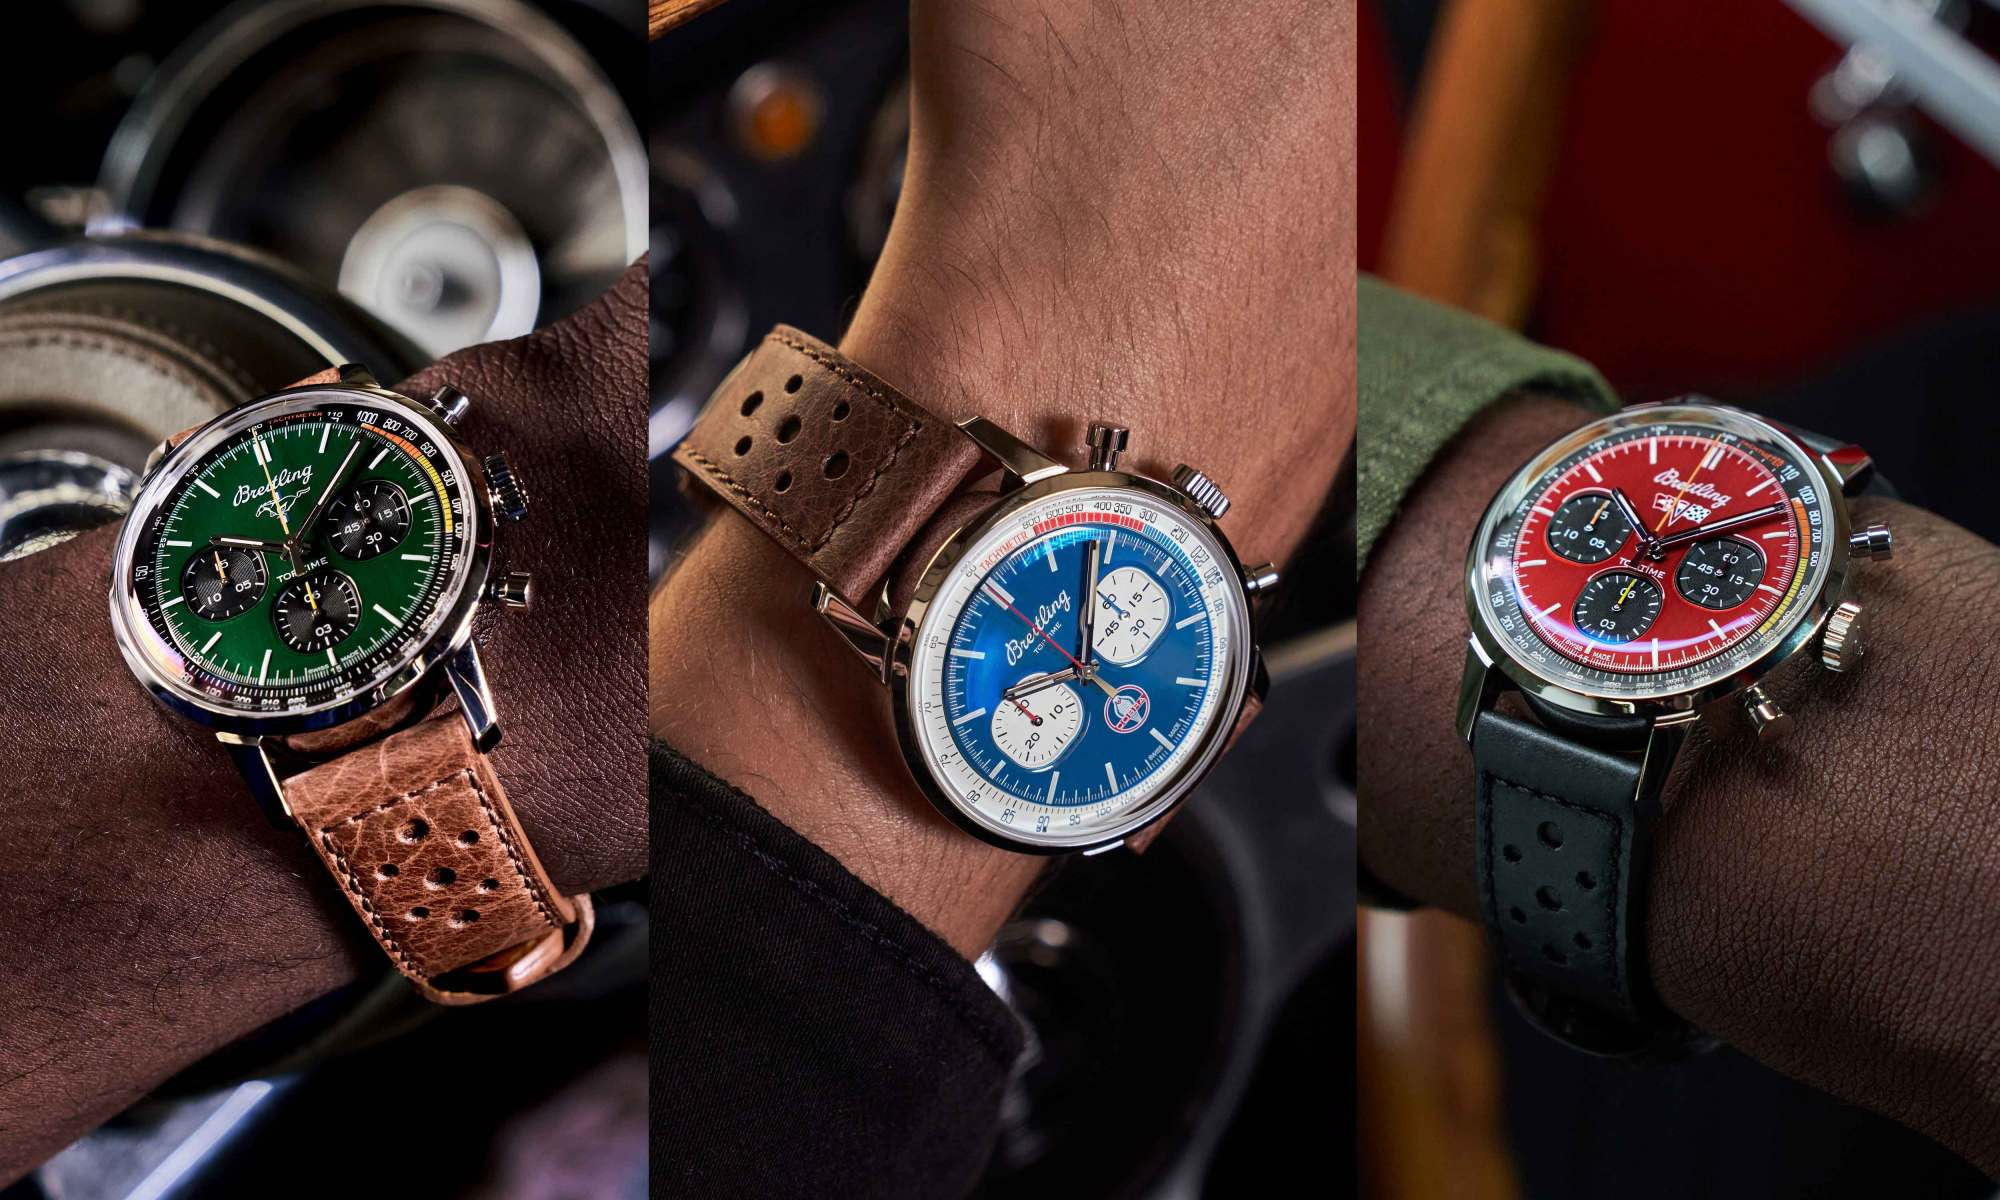 Breitling New Top Time Classic Cars Capsule Collection Composite